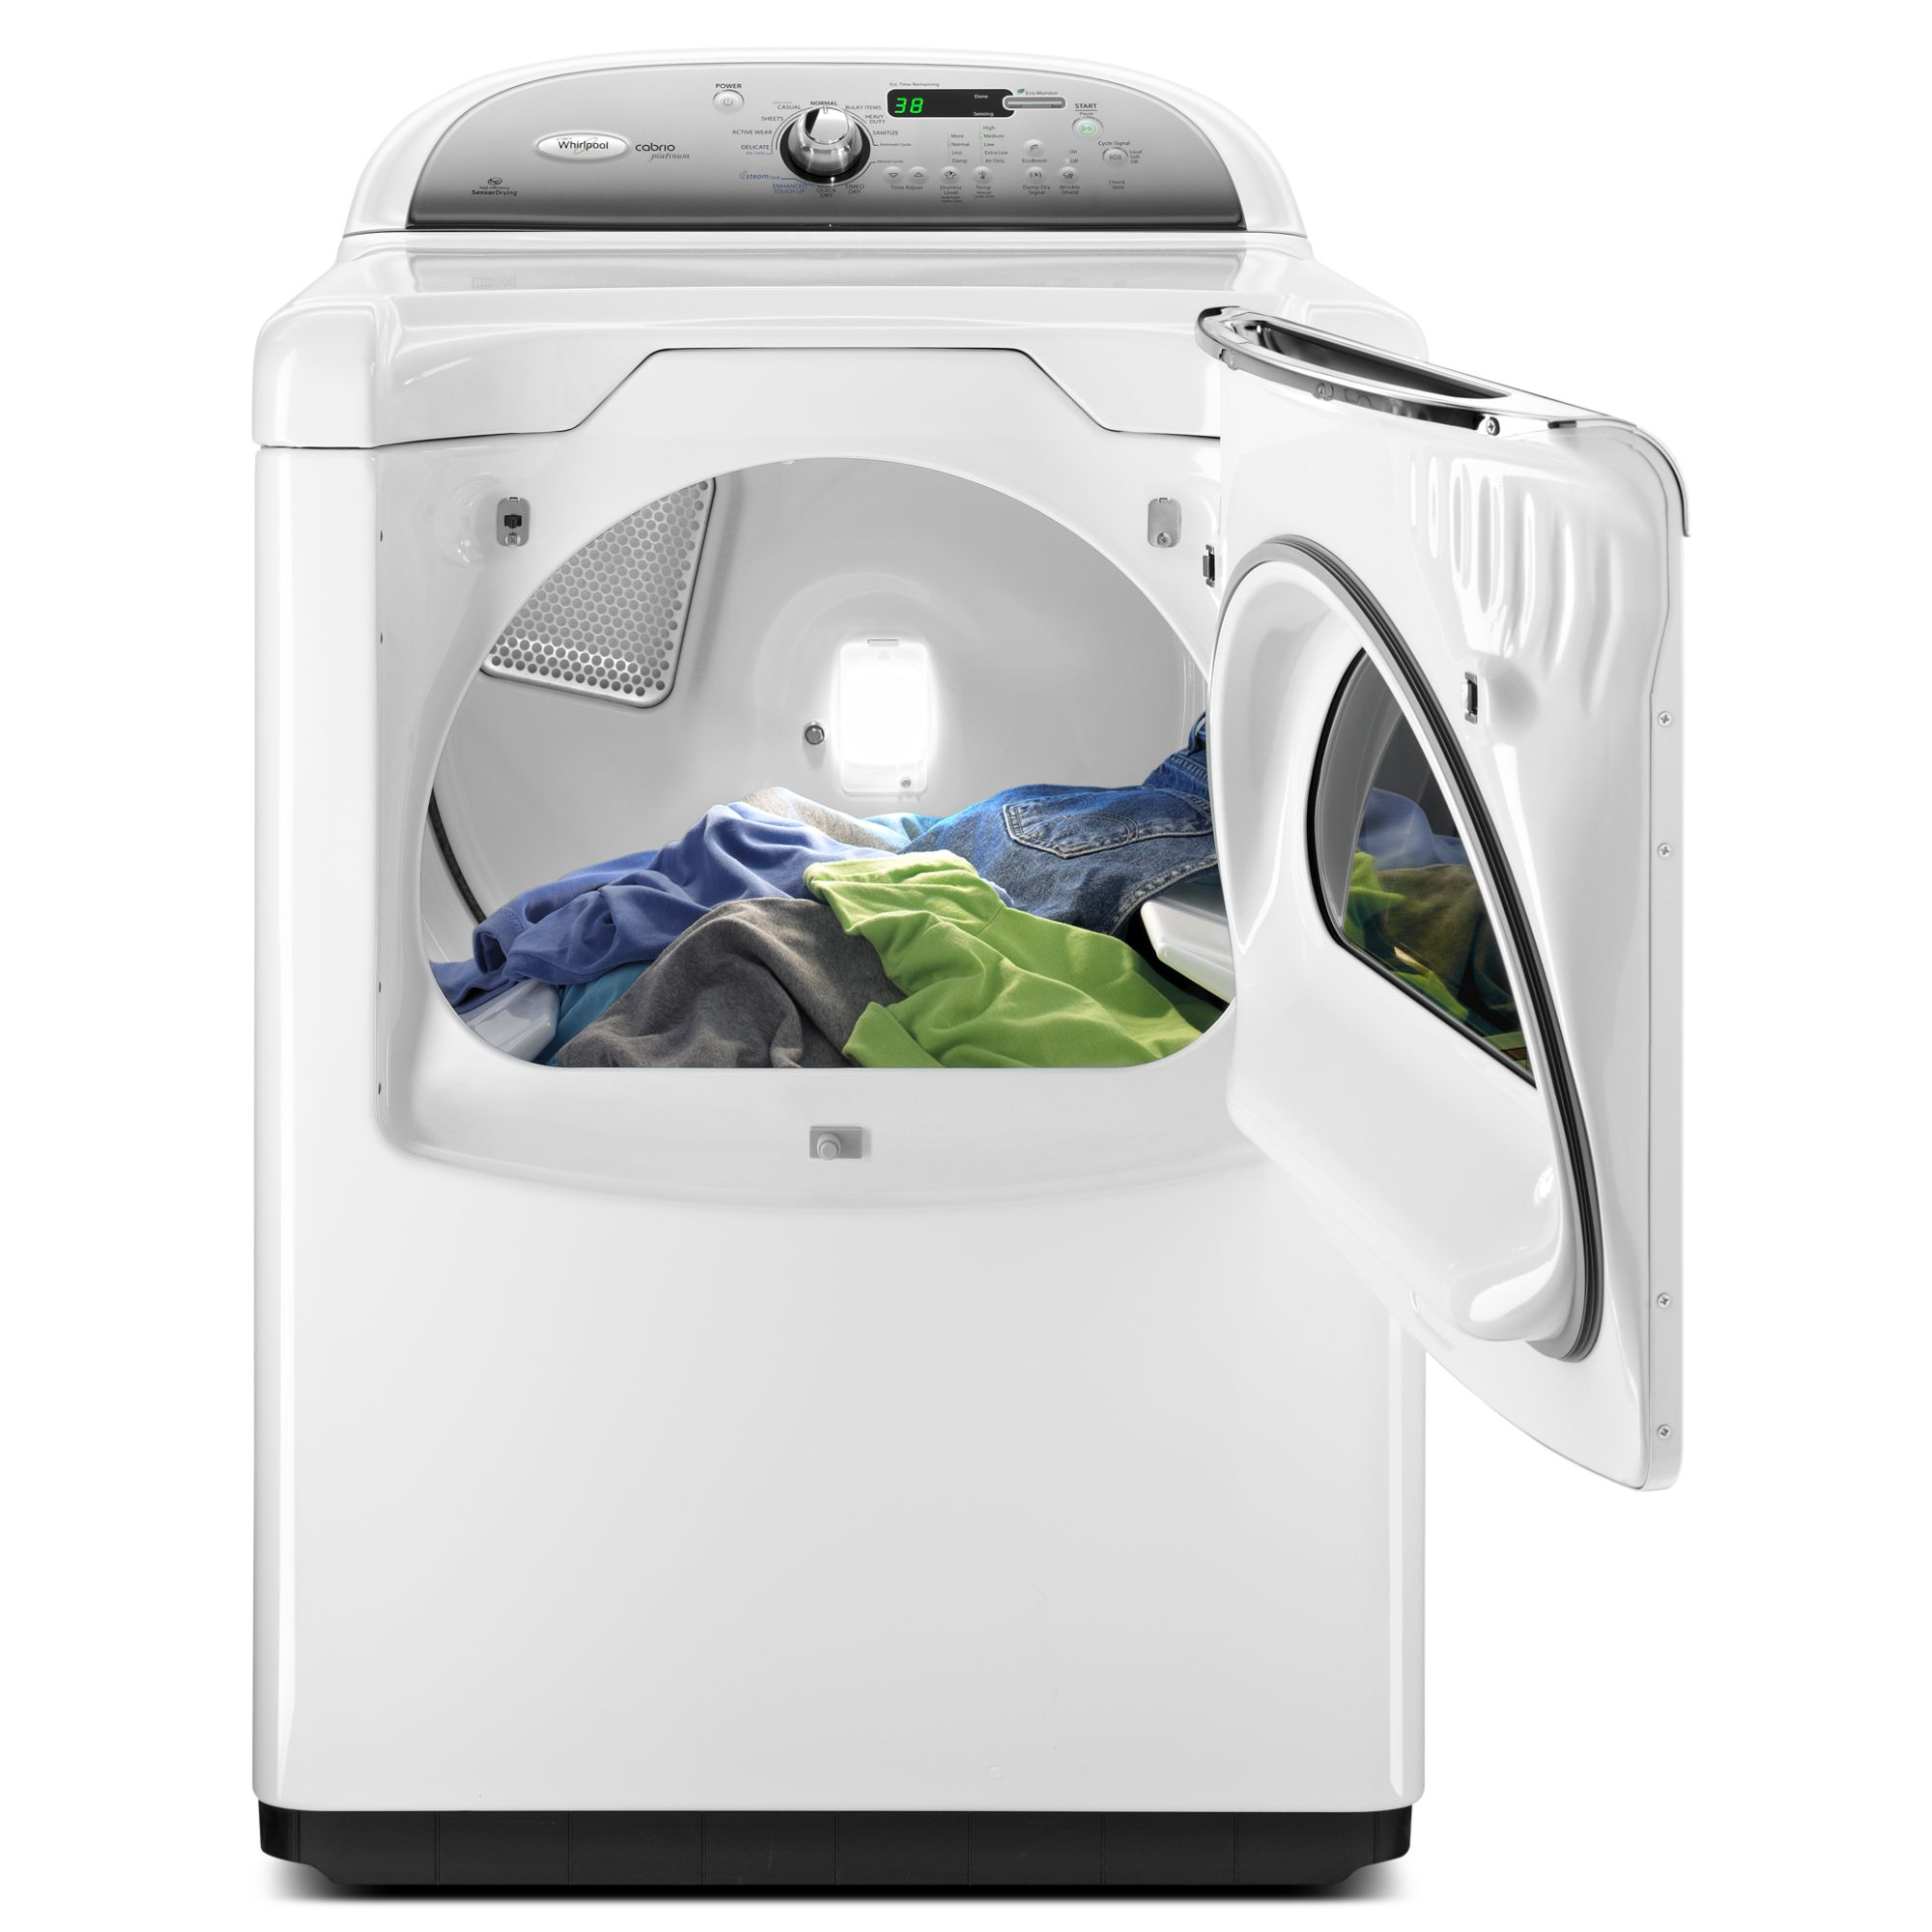 Whirlpool 7.6 cu. ft. Electric Dryer w/ Steam Cycle - White